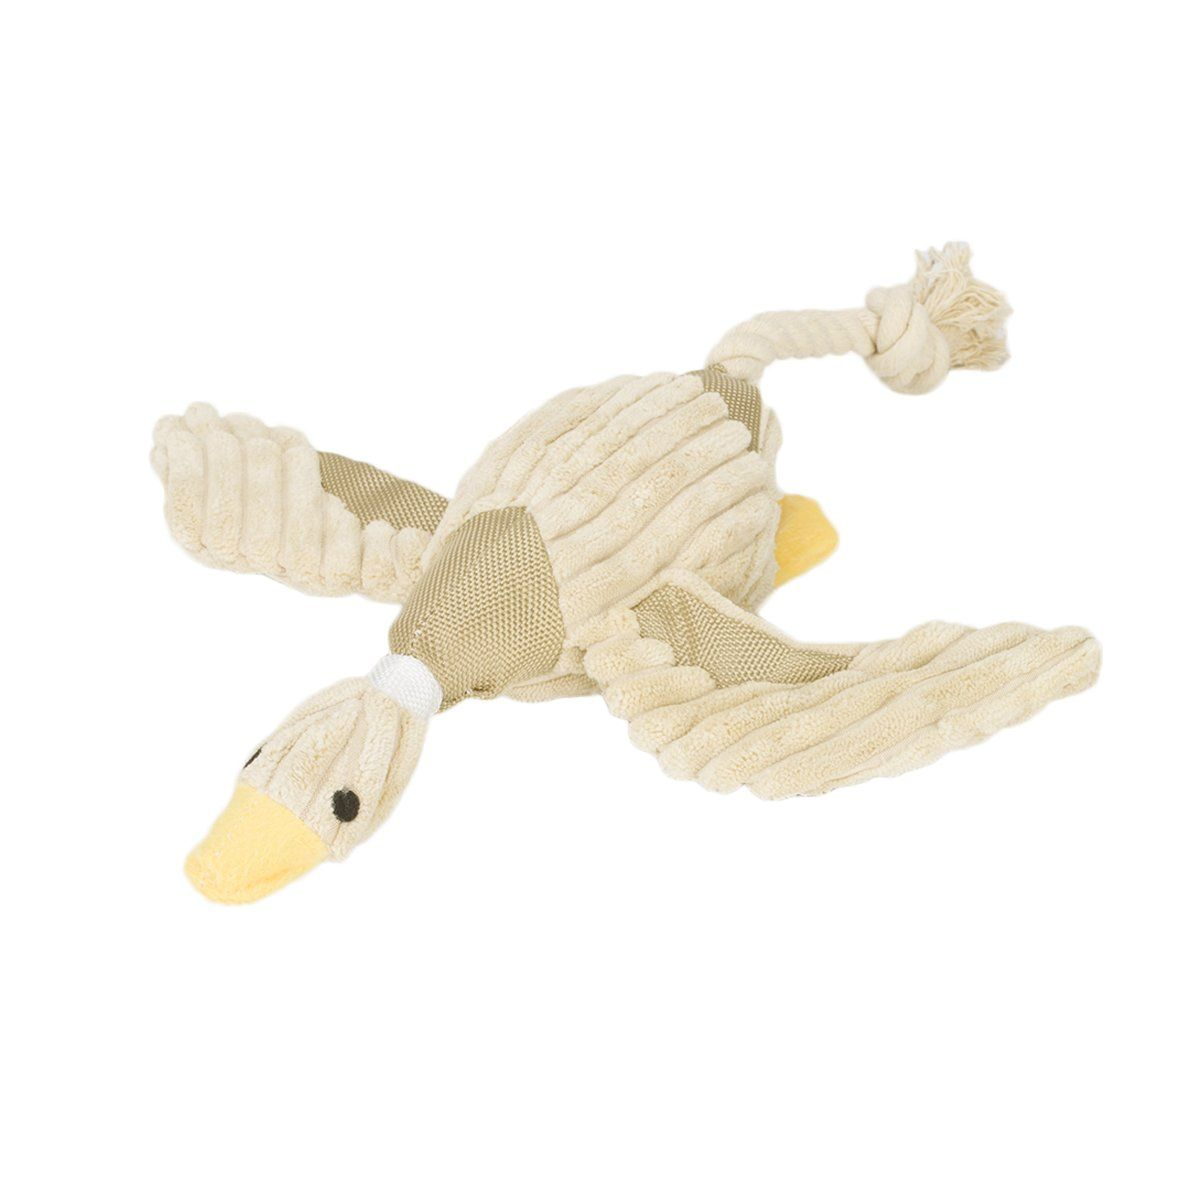 Dog Toys Stuffed Squeaking Duck Dog Toy Plush Puppy Honking Duck